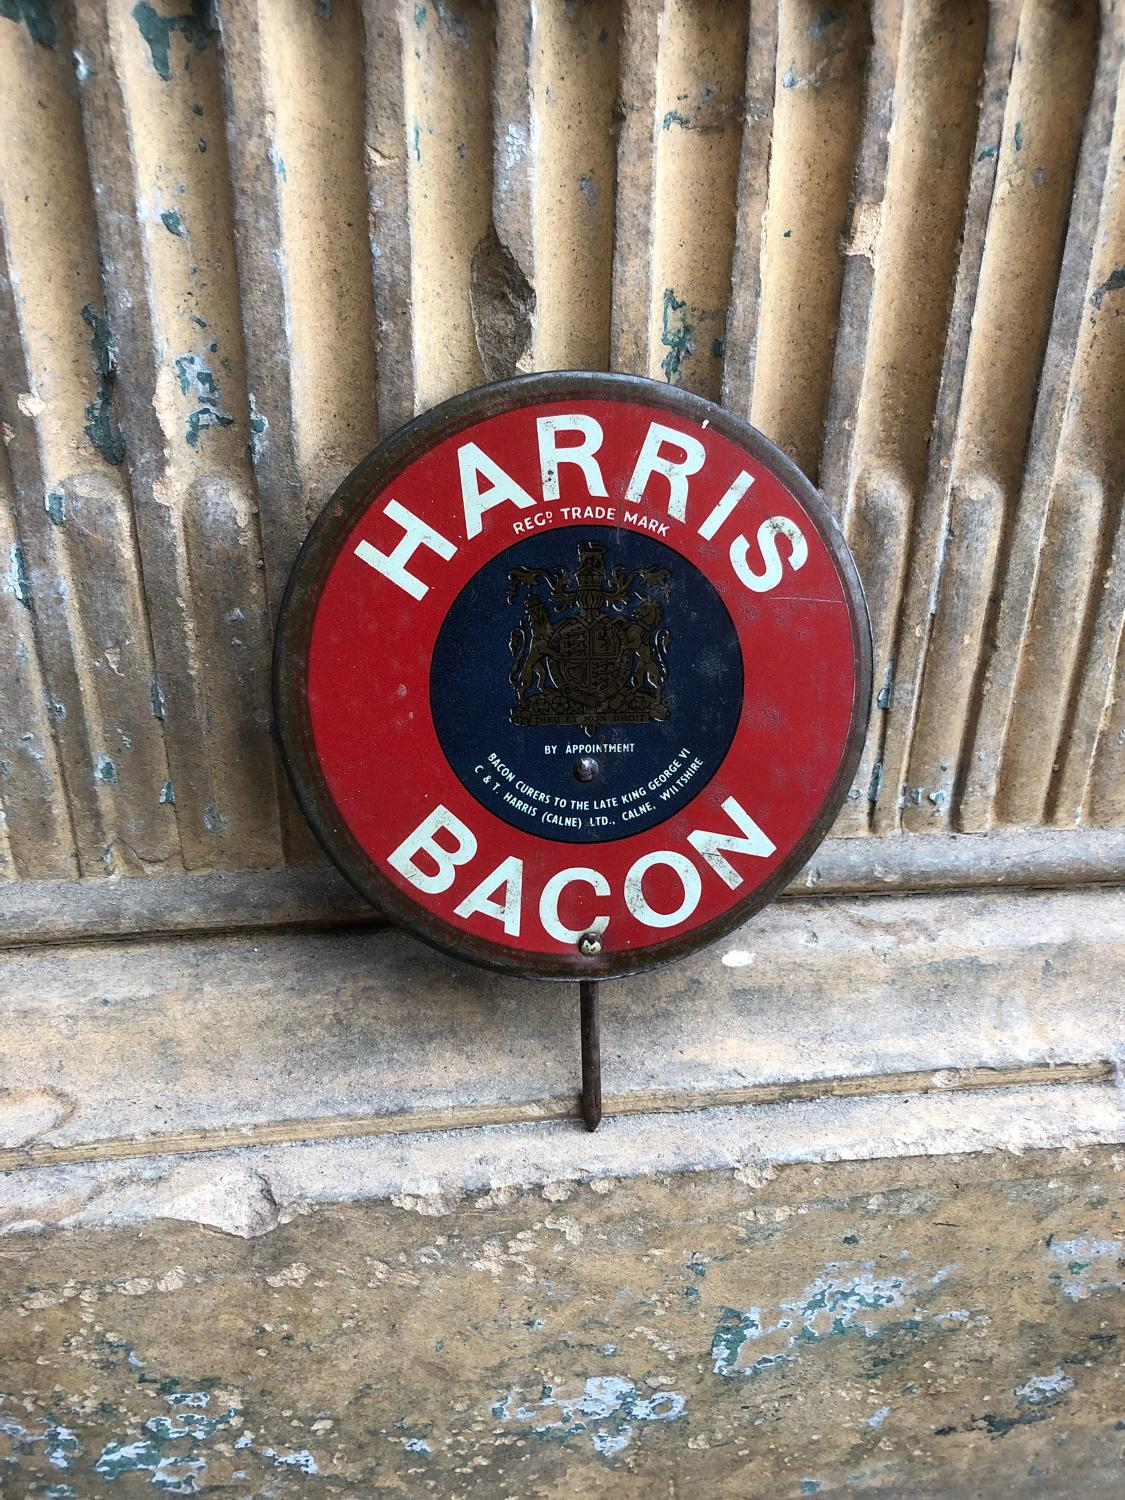 1950s Excellent Condition Butchers Shops Sign - Harris Bacon By Appt